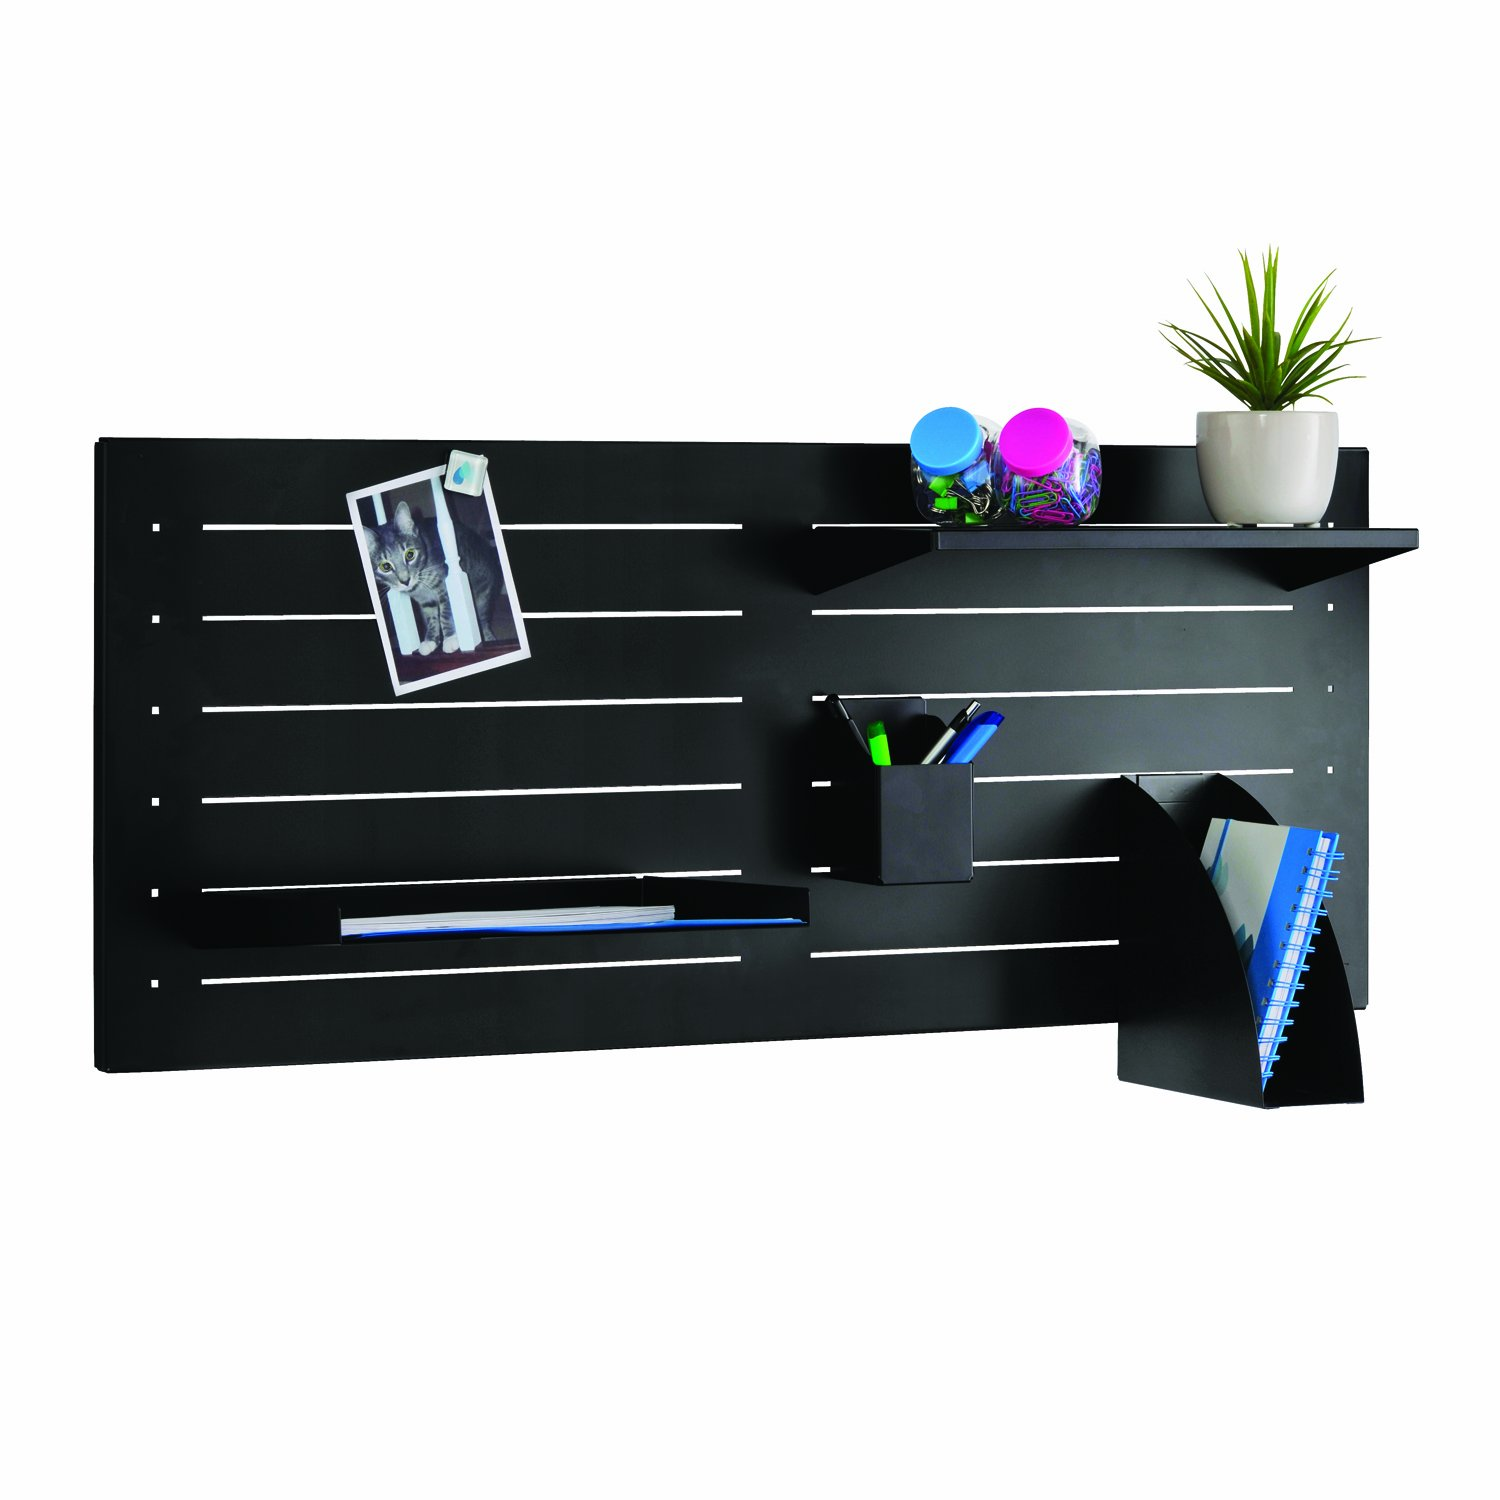 Steelmaster Slot System Large Shelf Only, 14 by 6 by 1.75-Inch, 1 Shelf Piece, Silver (264P20150) MMF Industries